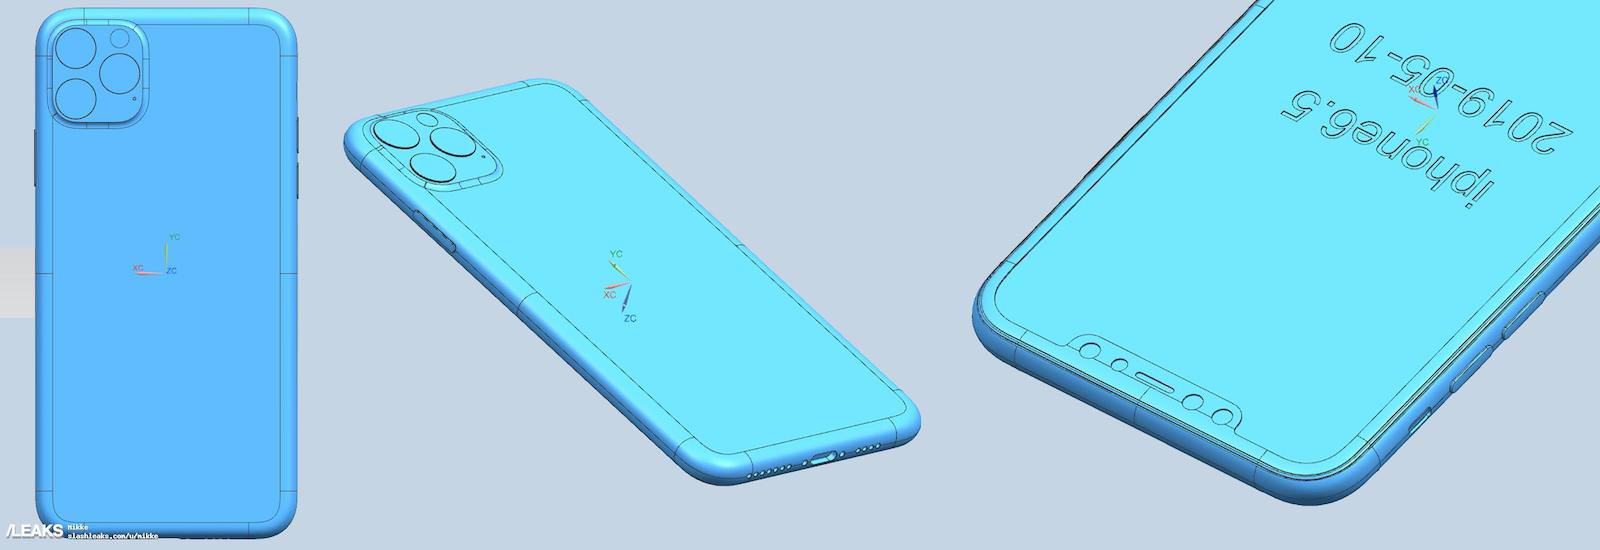 Iphone xi max cad